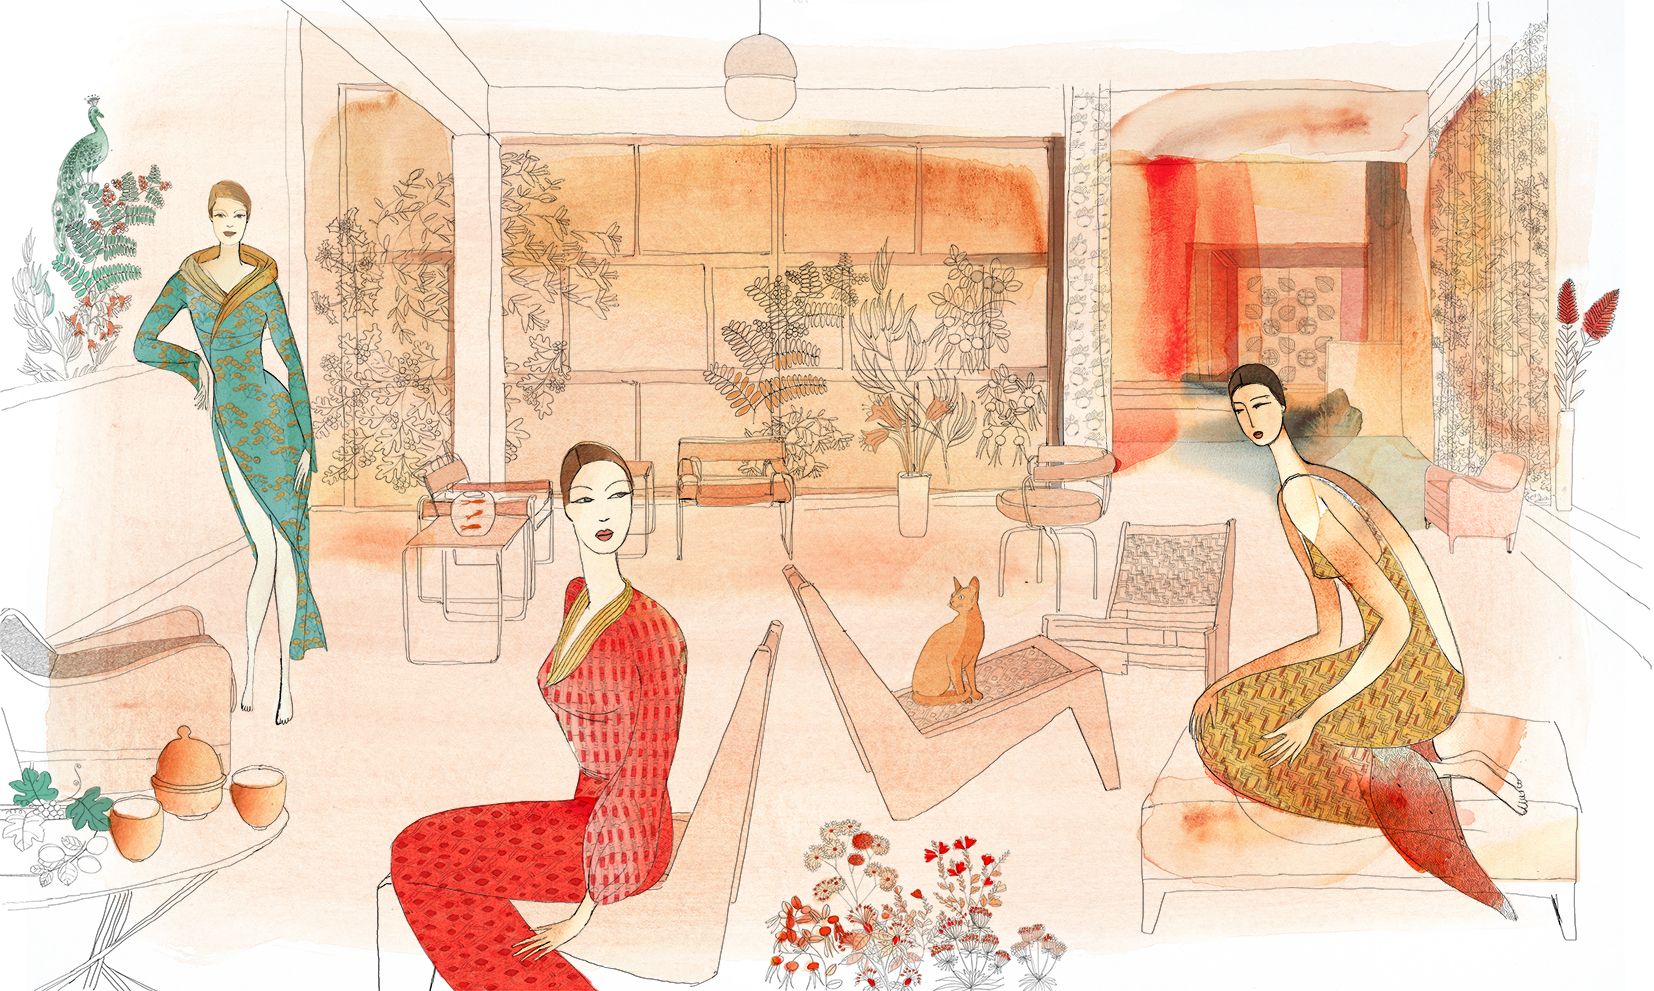 Watercolor illustration, fashion, interior